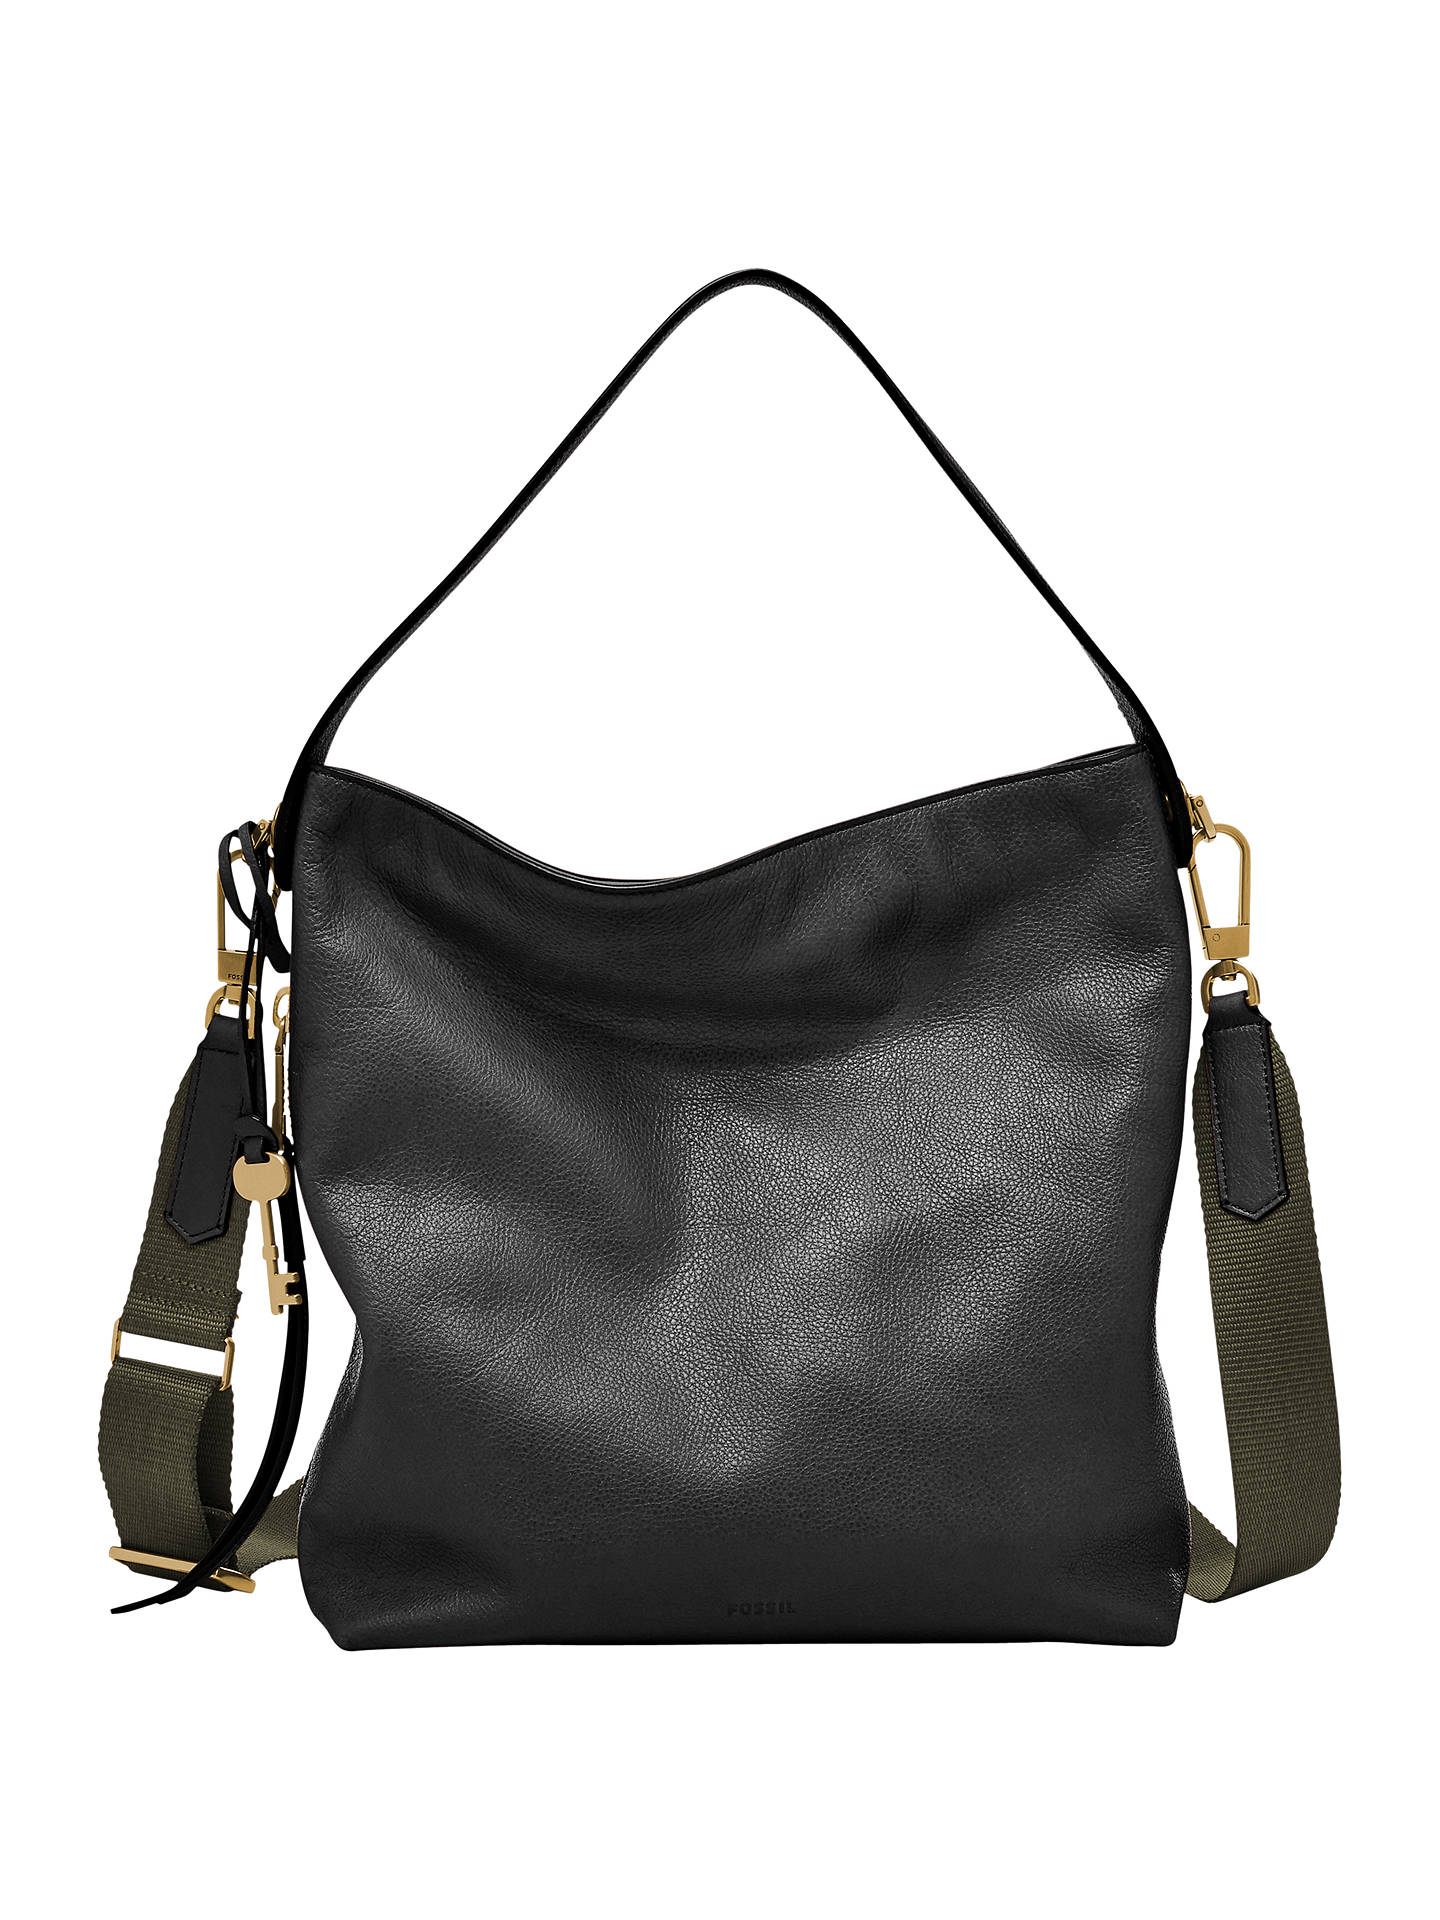 84dad43434 Fossil Maya Small Leather Hobo Bag at John Lewis   Partners